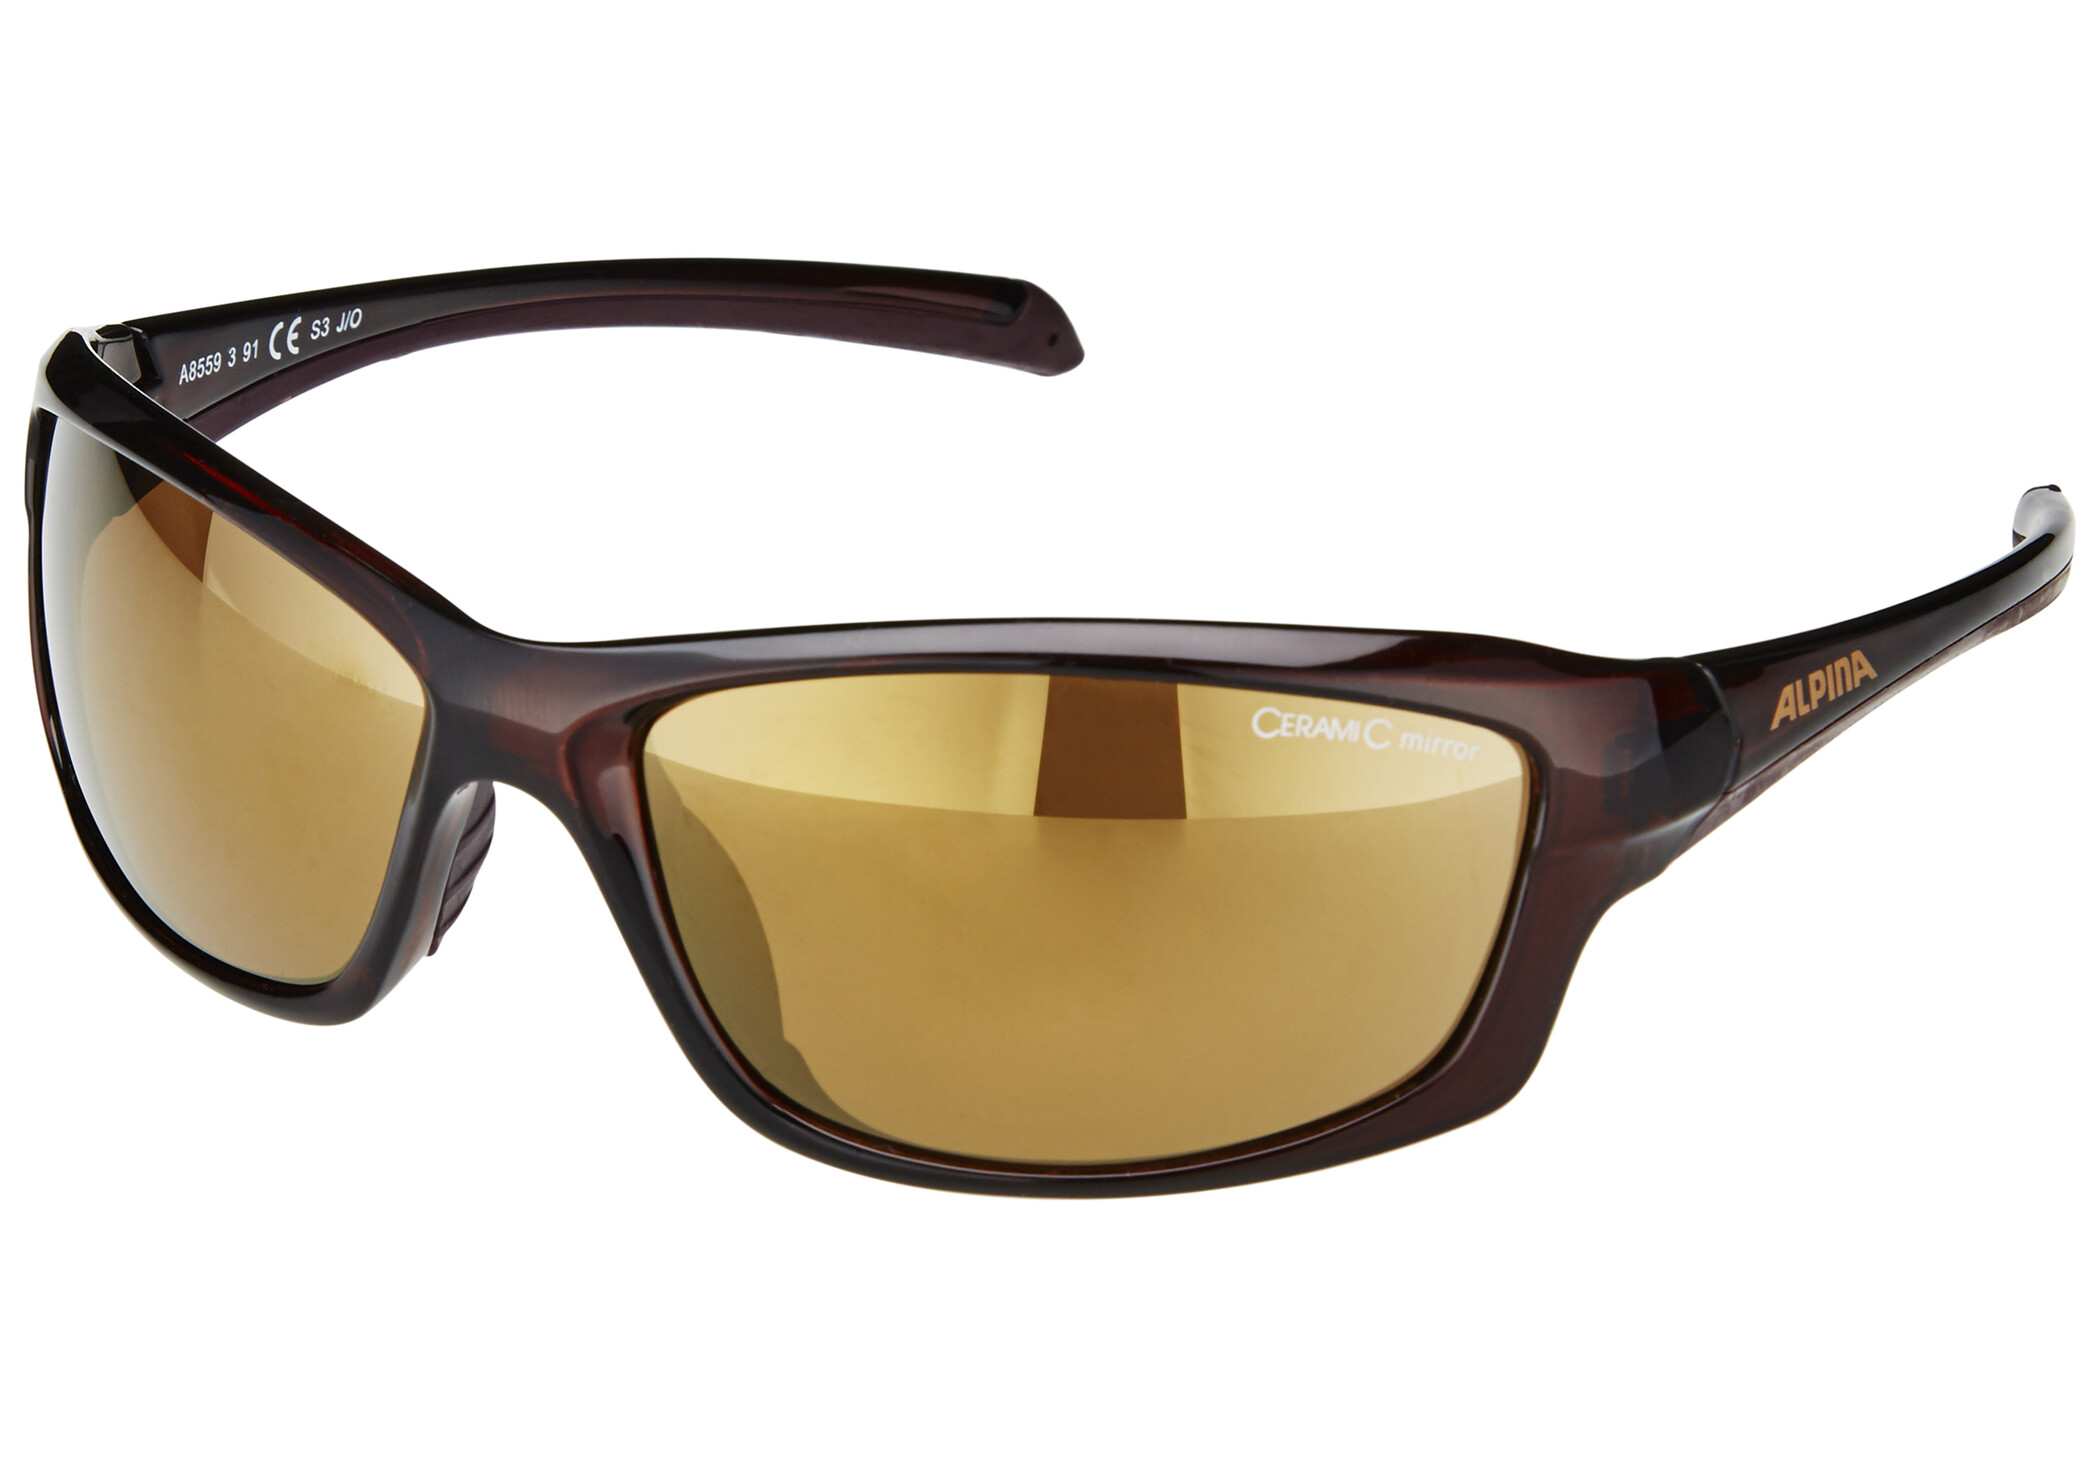 Alpina Dyfer Brille, brown transparent/gold mirror (2019) | Glasses